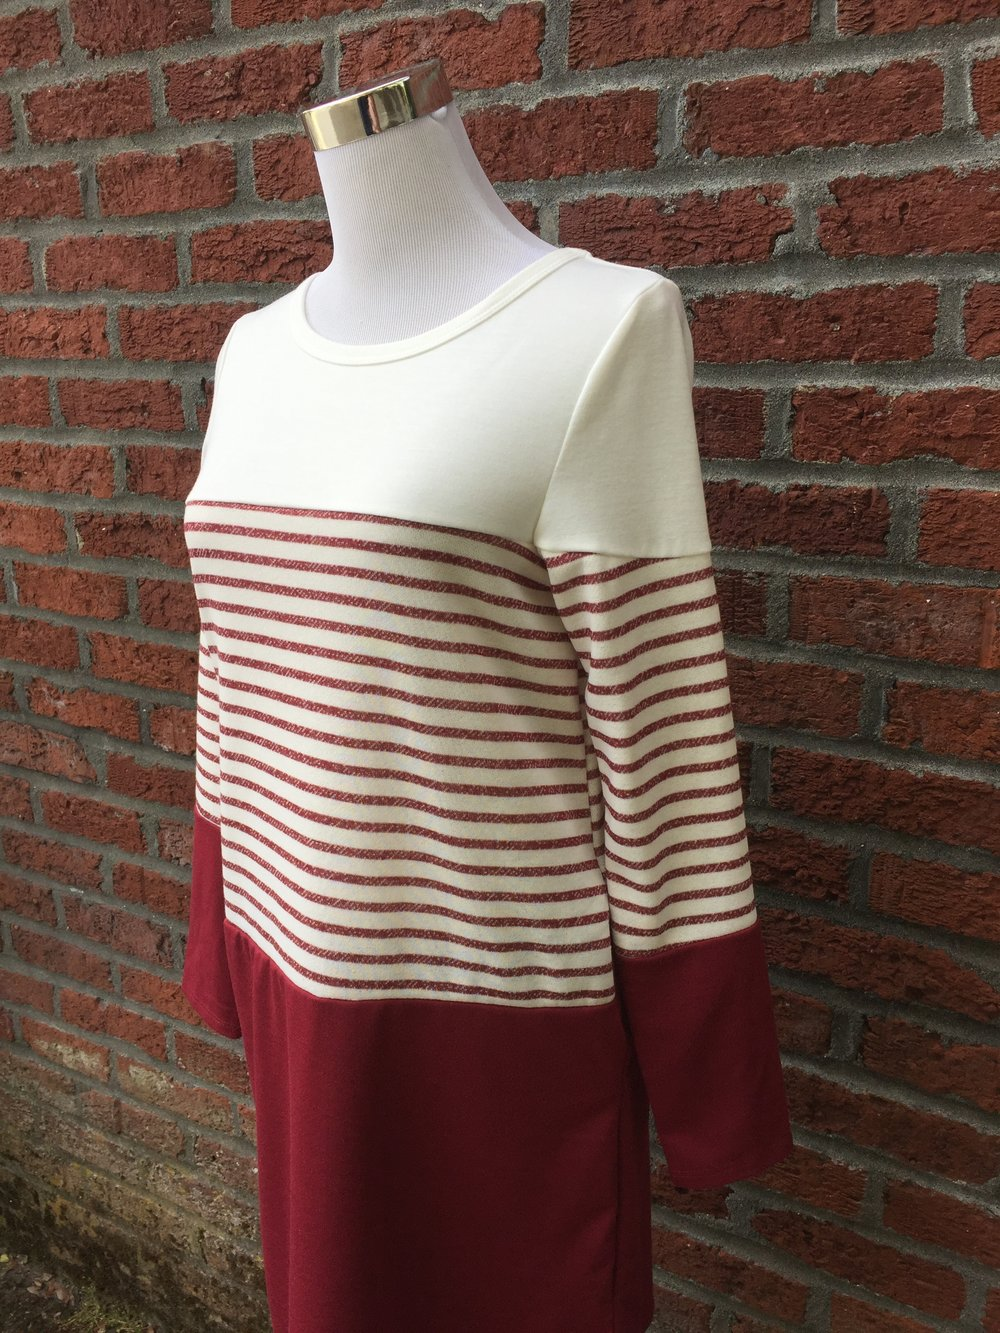 Hailey & Co striped tunic ($42, black and red)